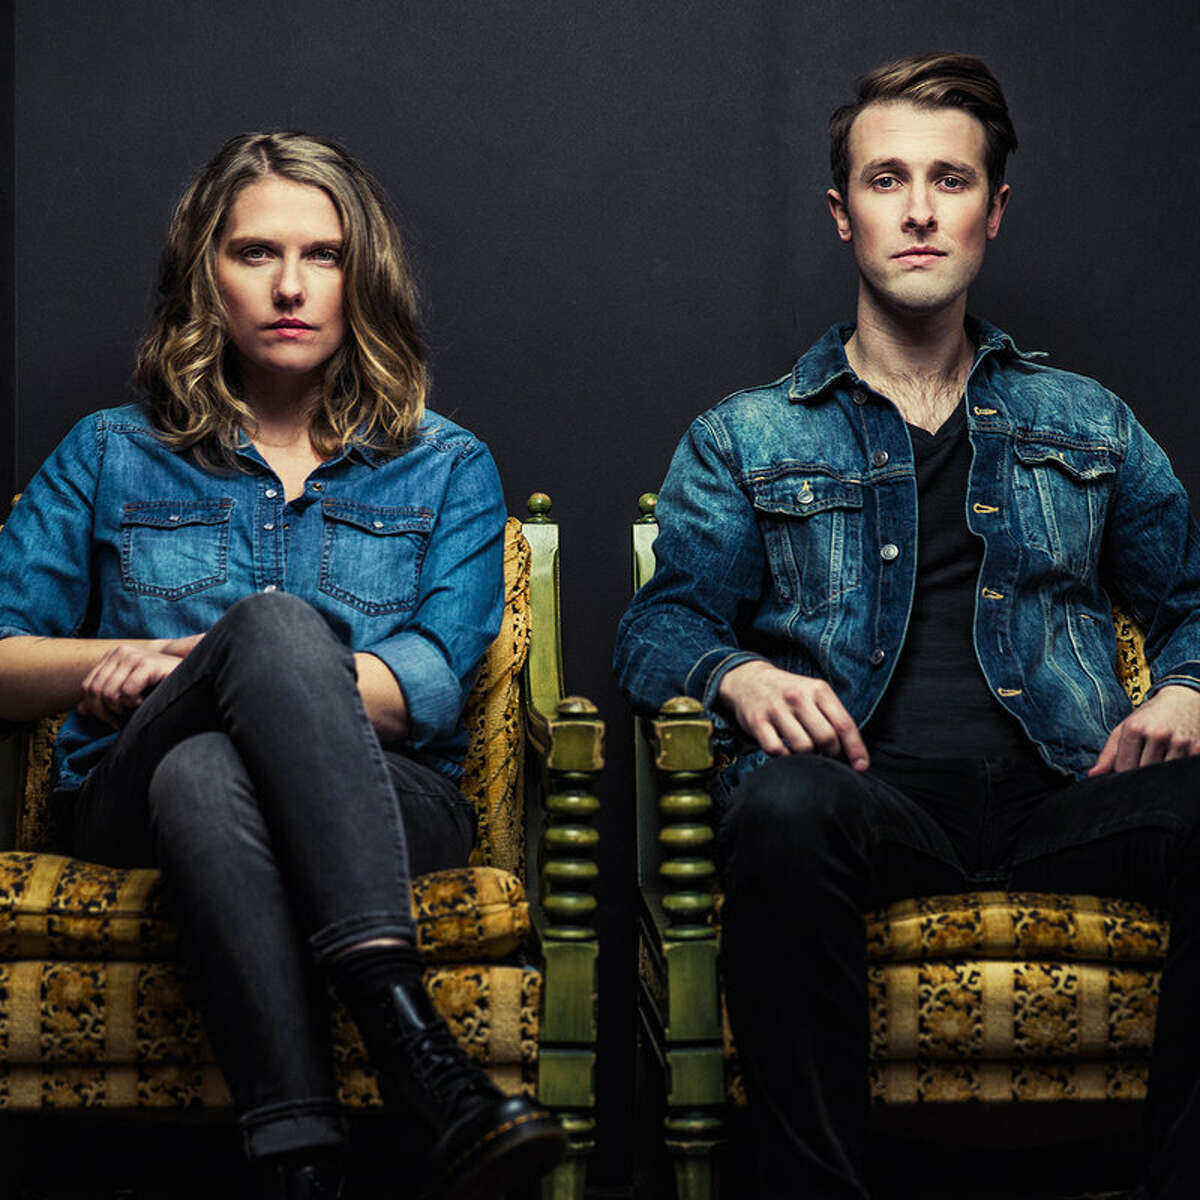 Indie folk band Dead Horses will be performing Saturday at Caffe Lena in Saratoga Springs. Get details. Read our spotlight on this band.